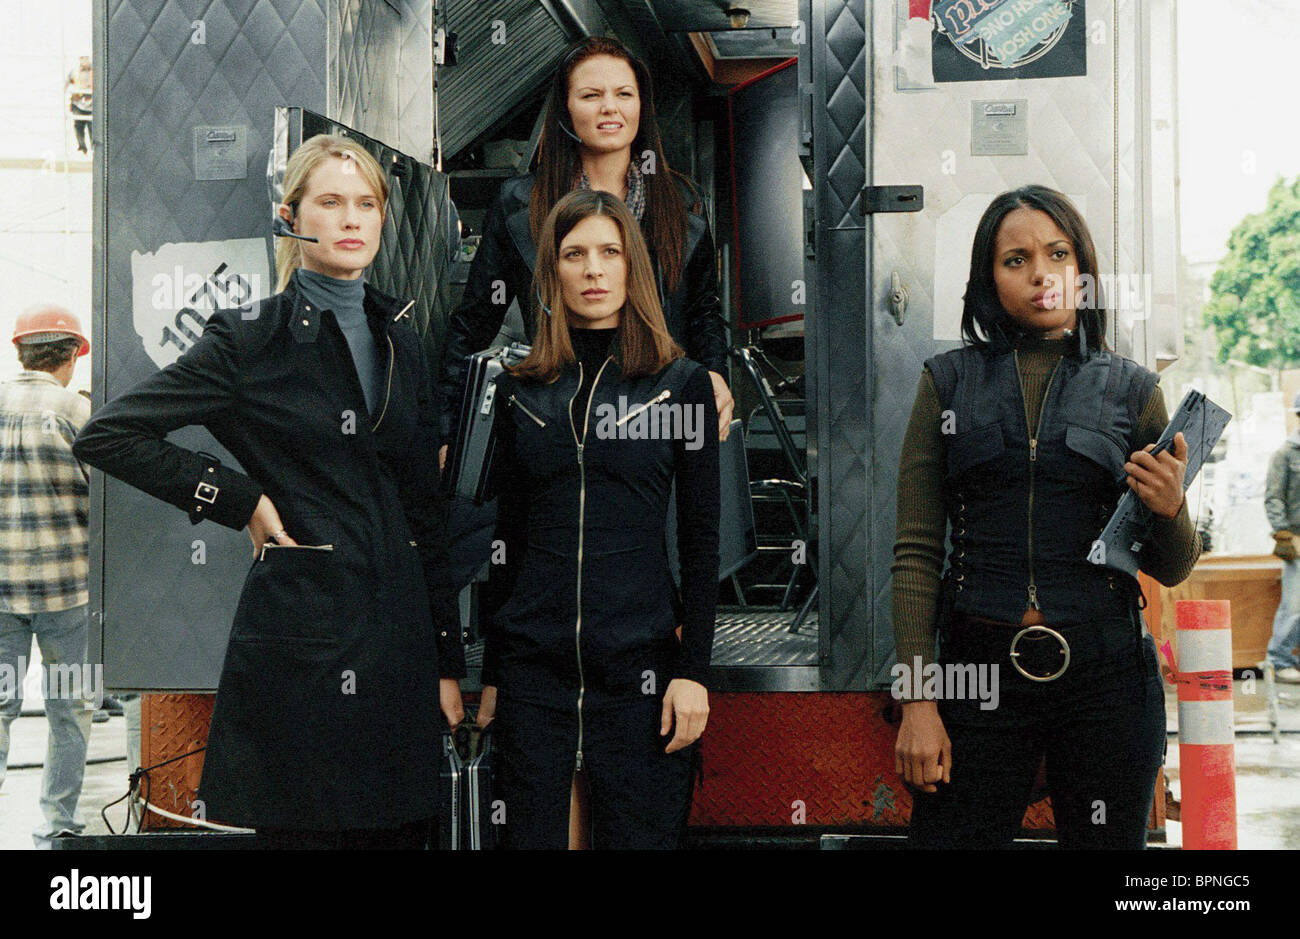 RACHEL HUNTER THERESA BARRERA MICHELLE MONAGHAN & KERRY WASHINGTON MR. AND MRS. SMITH; MR AND MRS SMITH; MR - Stock Image